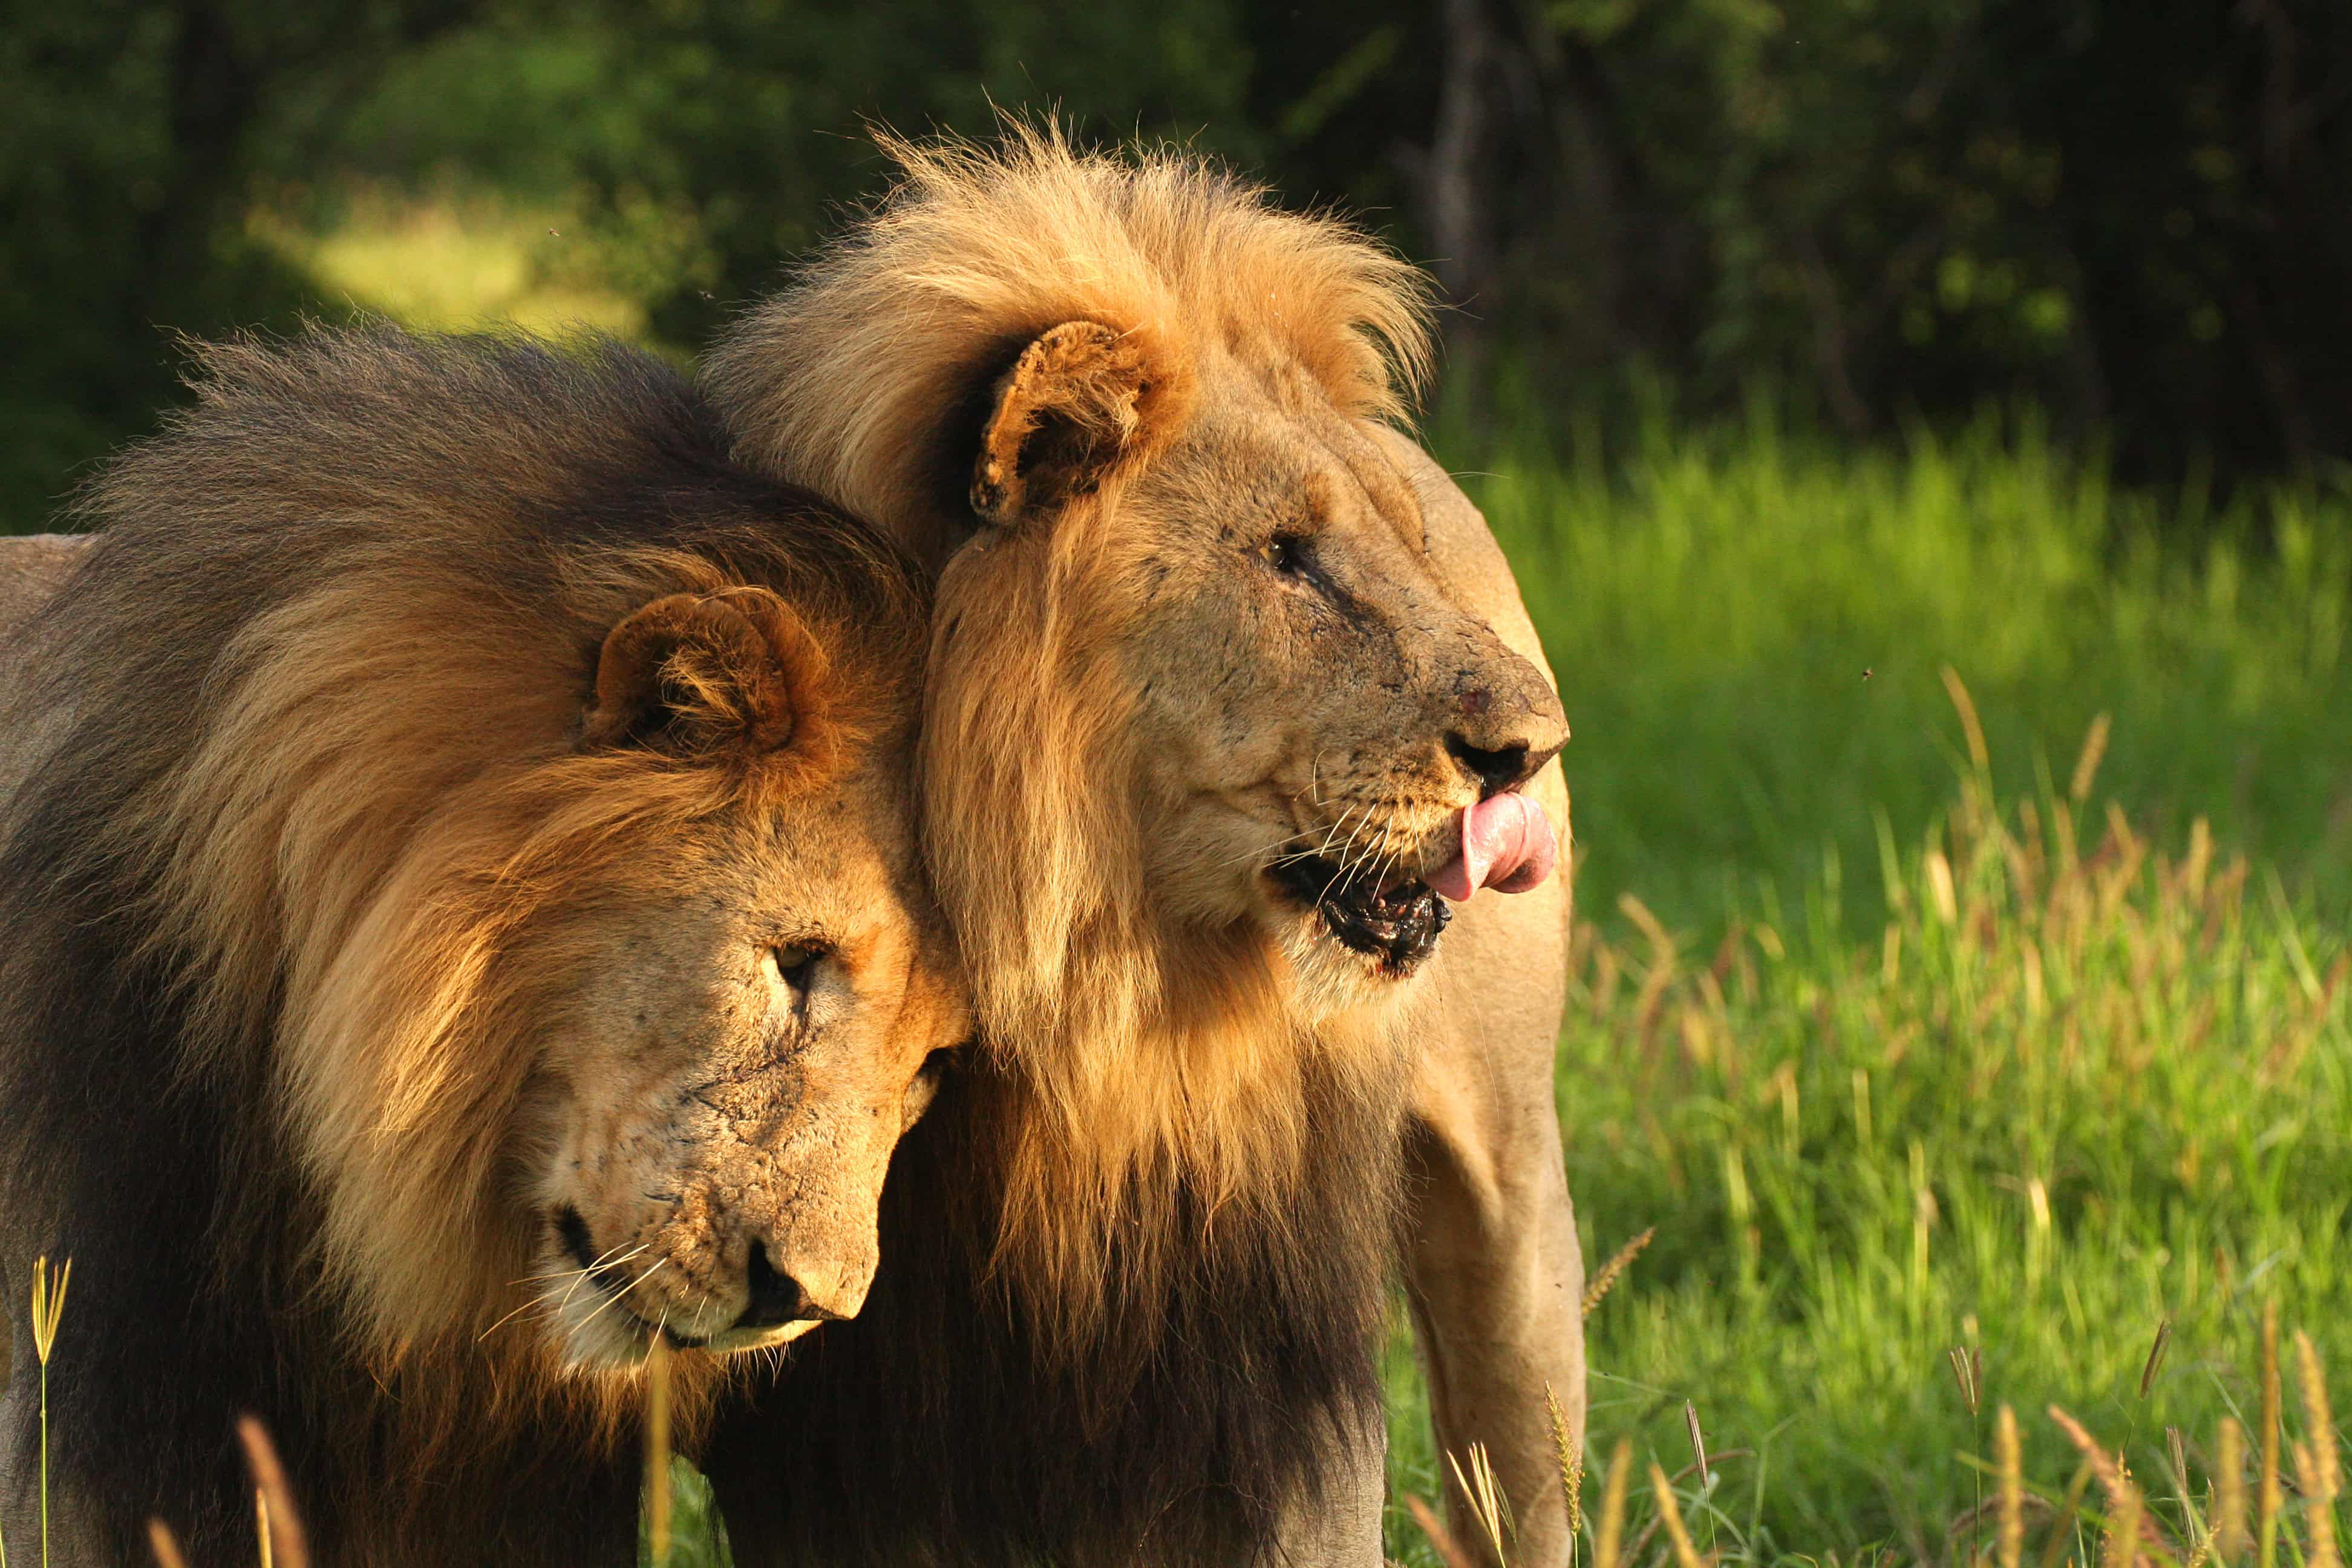 Two lion brothers